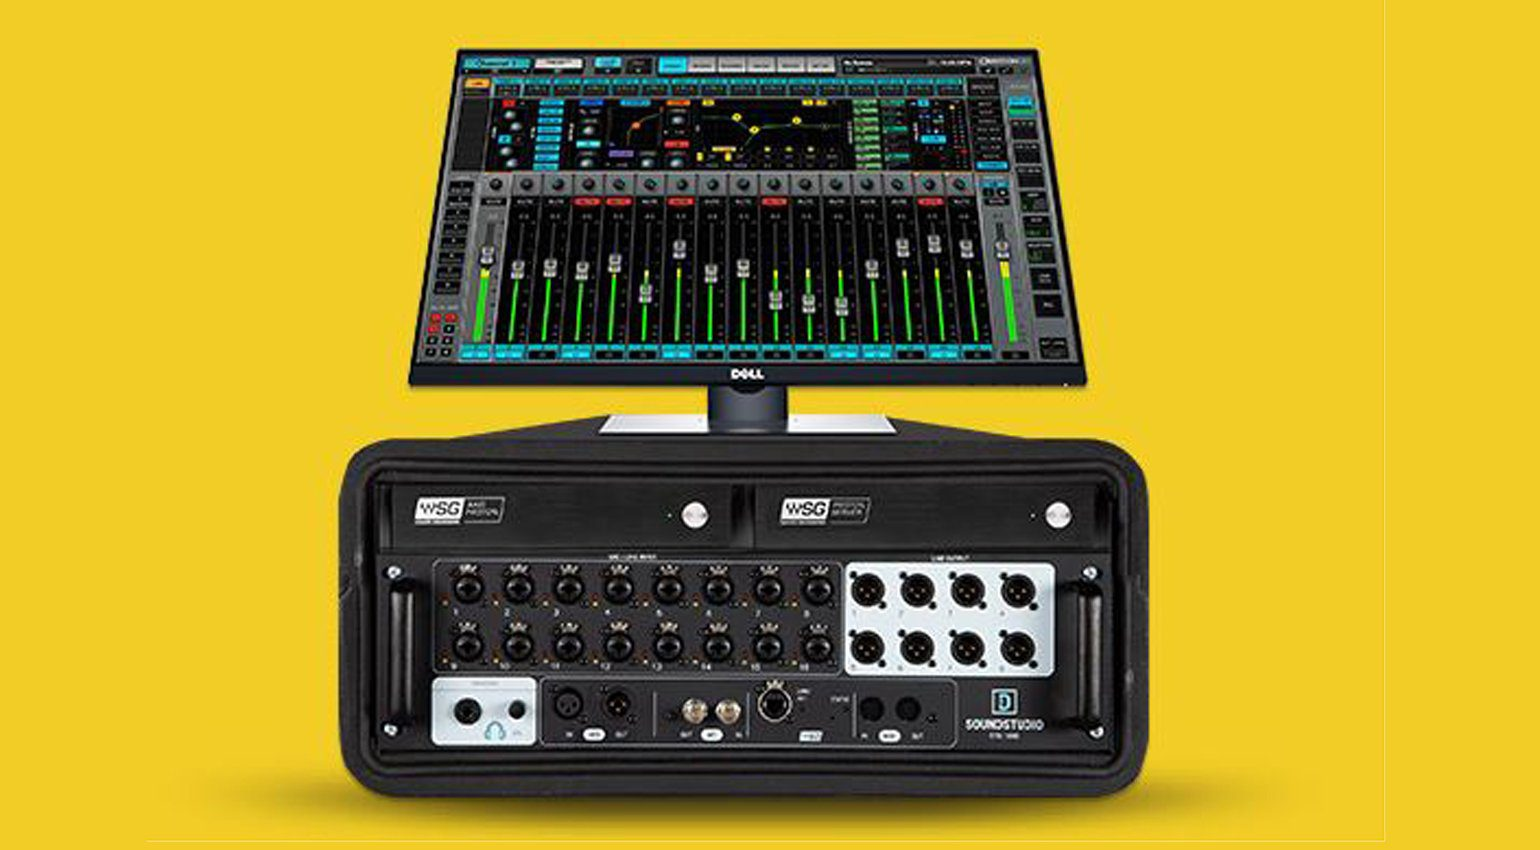 Neues 16-Kanal Live-Mixing-System von Waves: eMotion LV1 Proton